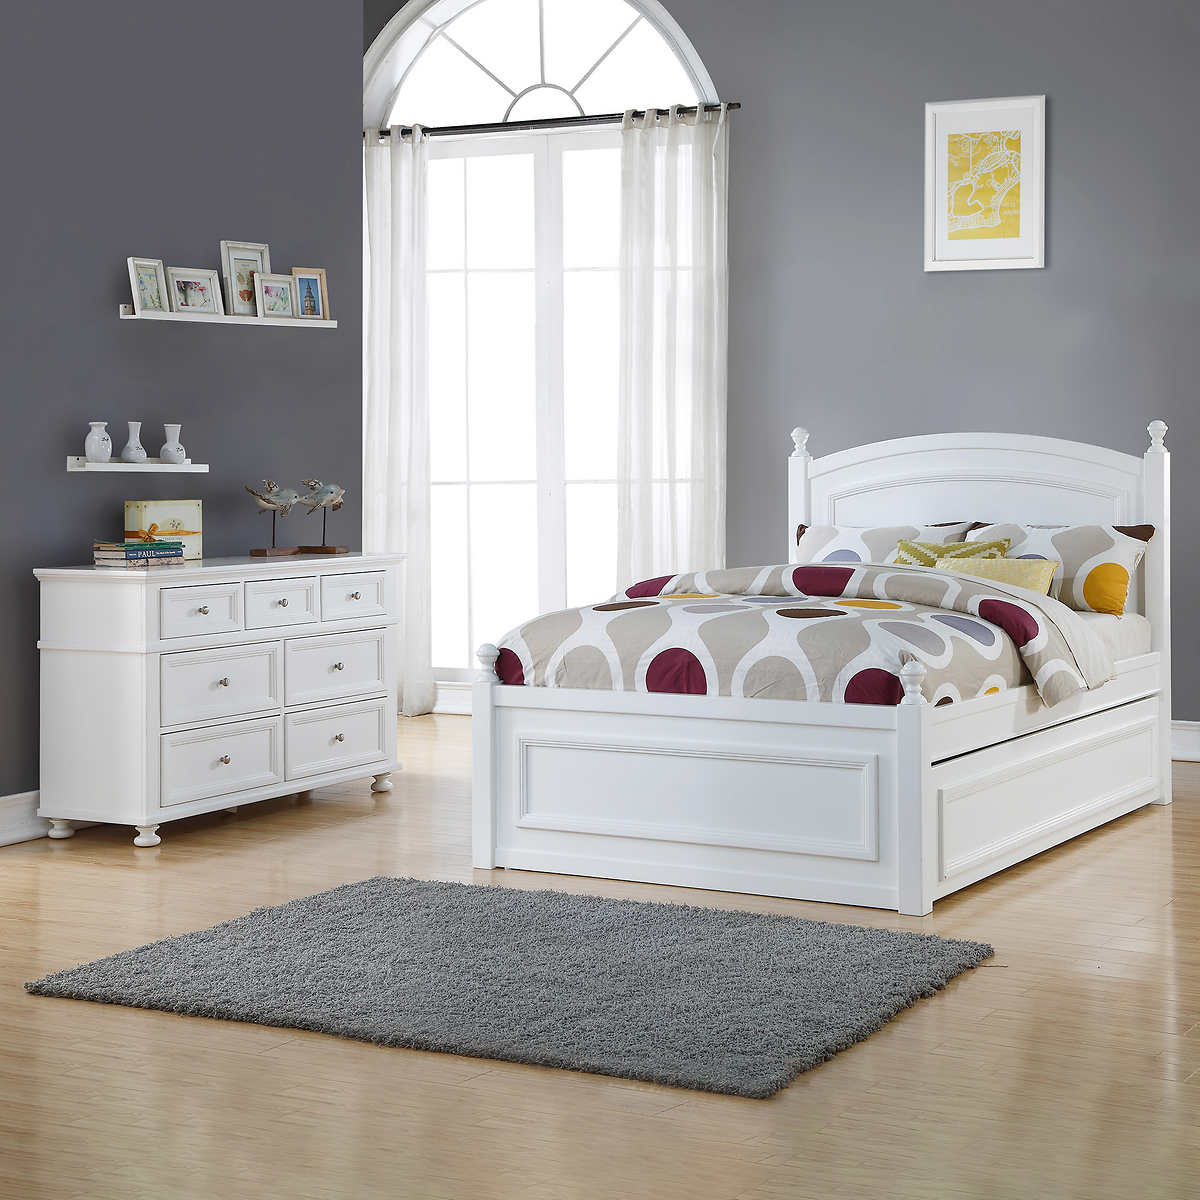 Ava Double Trundle Bed with Dresser